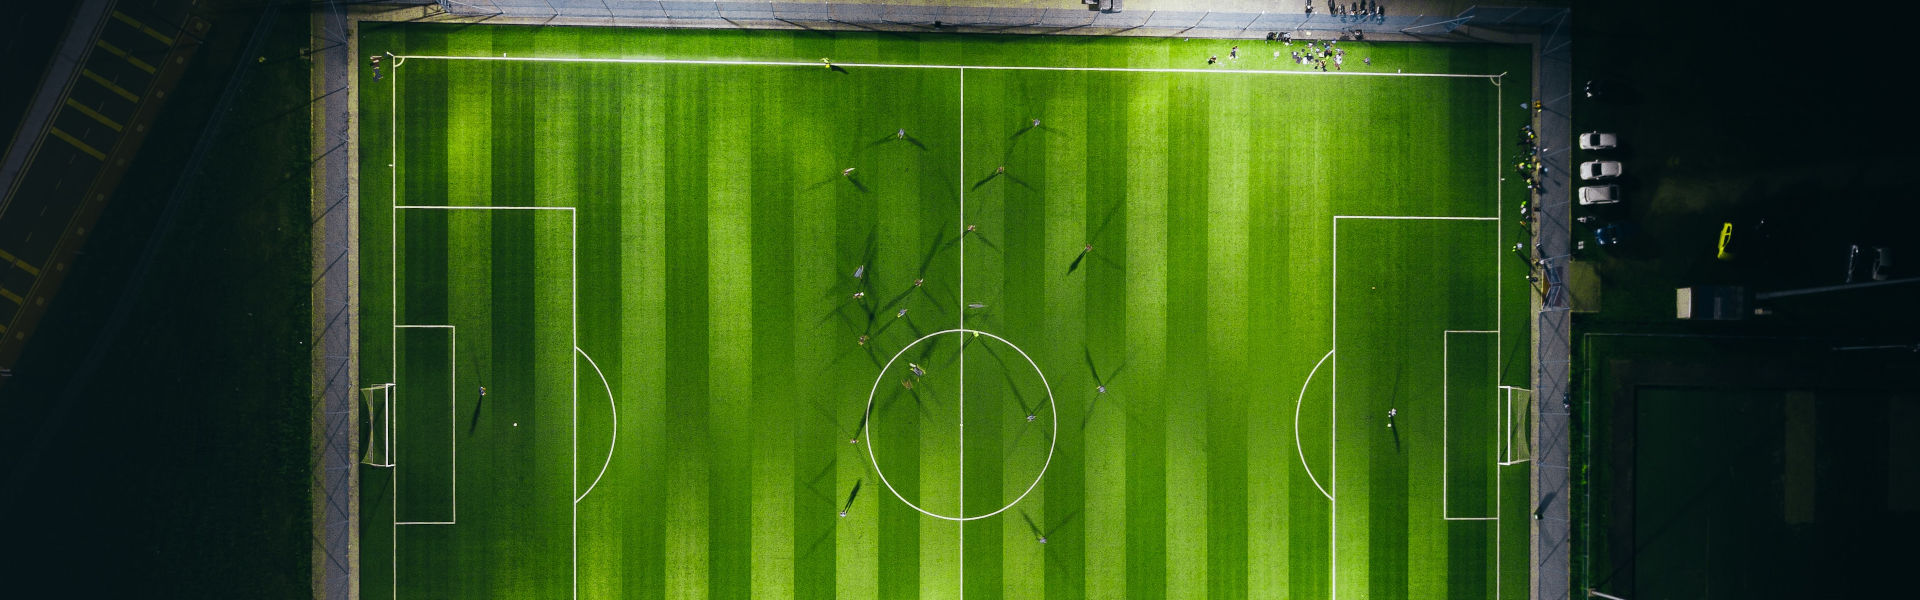 birds eye view photography green soccer field lights photo Free Green Image Unsplash